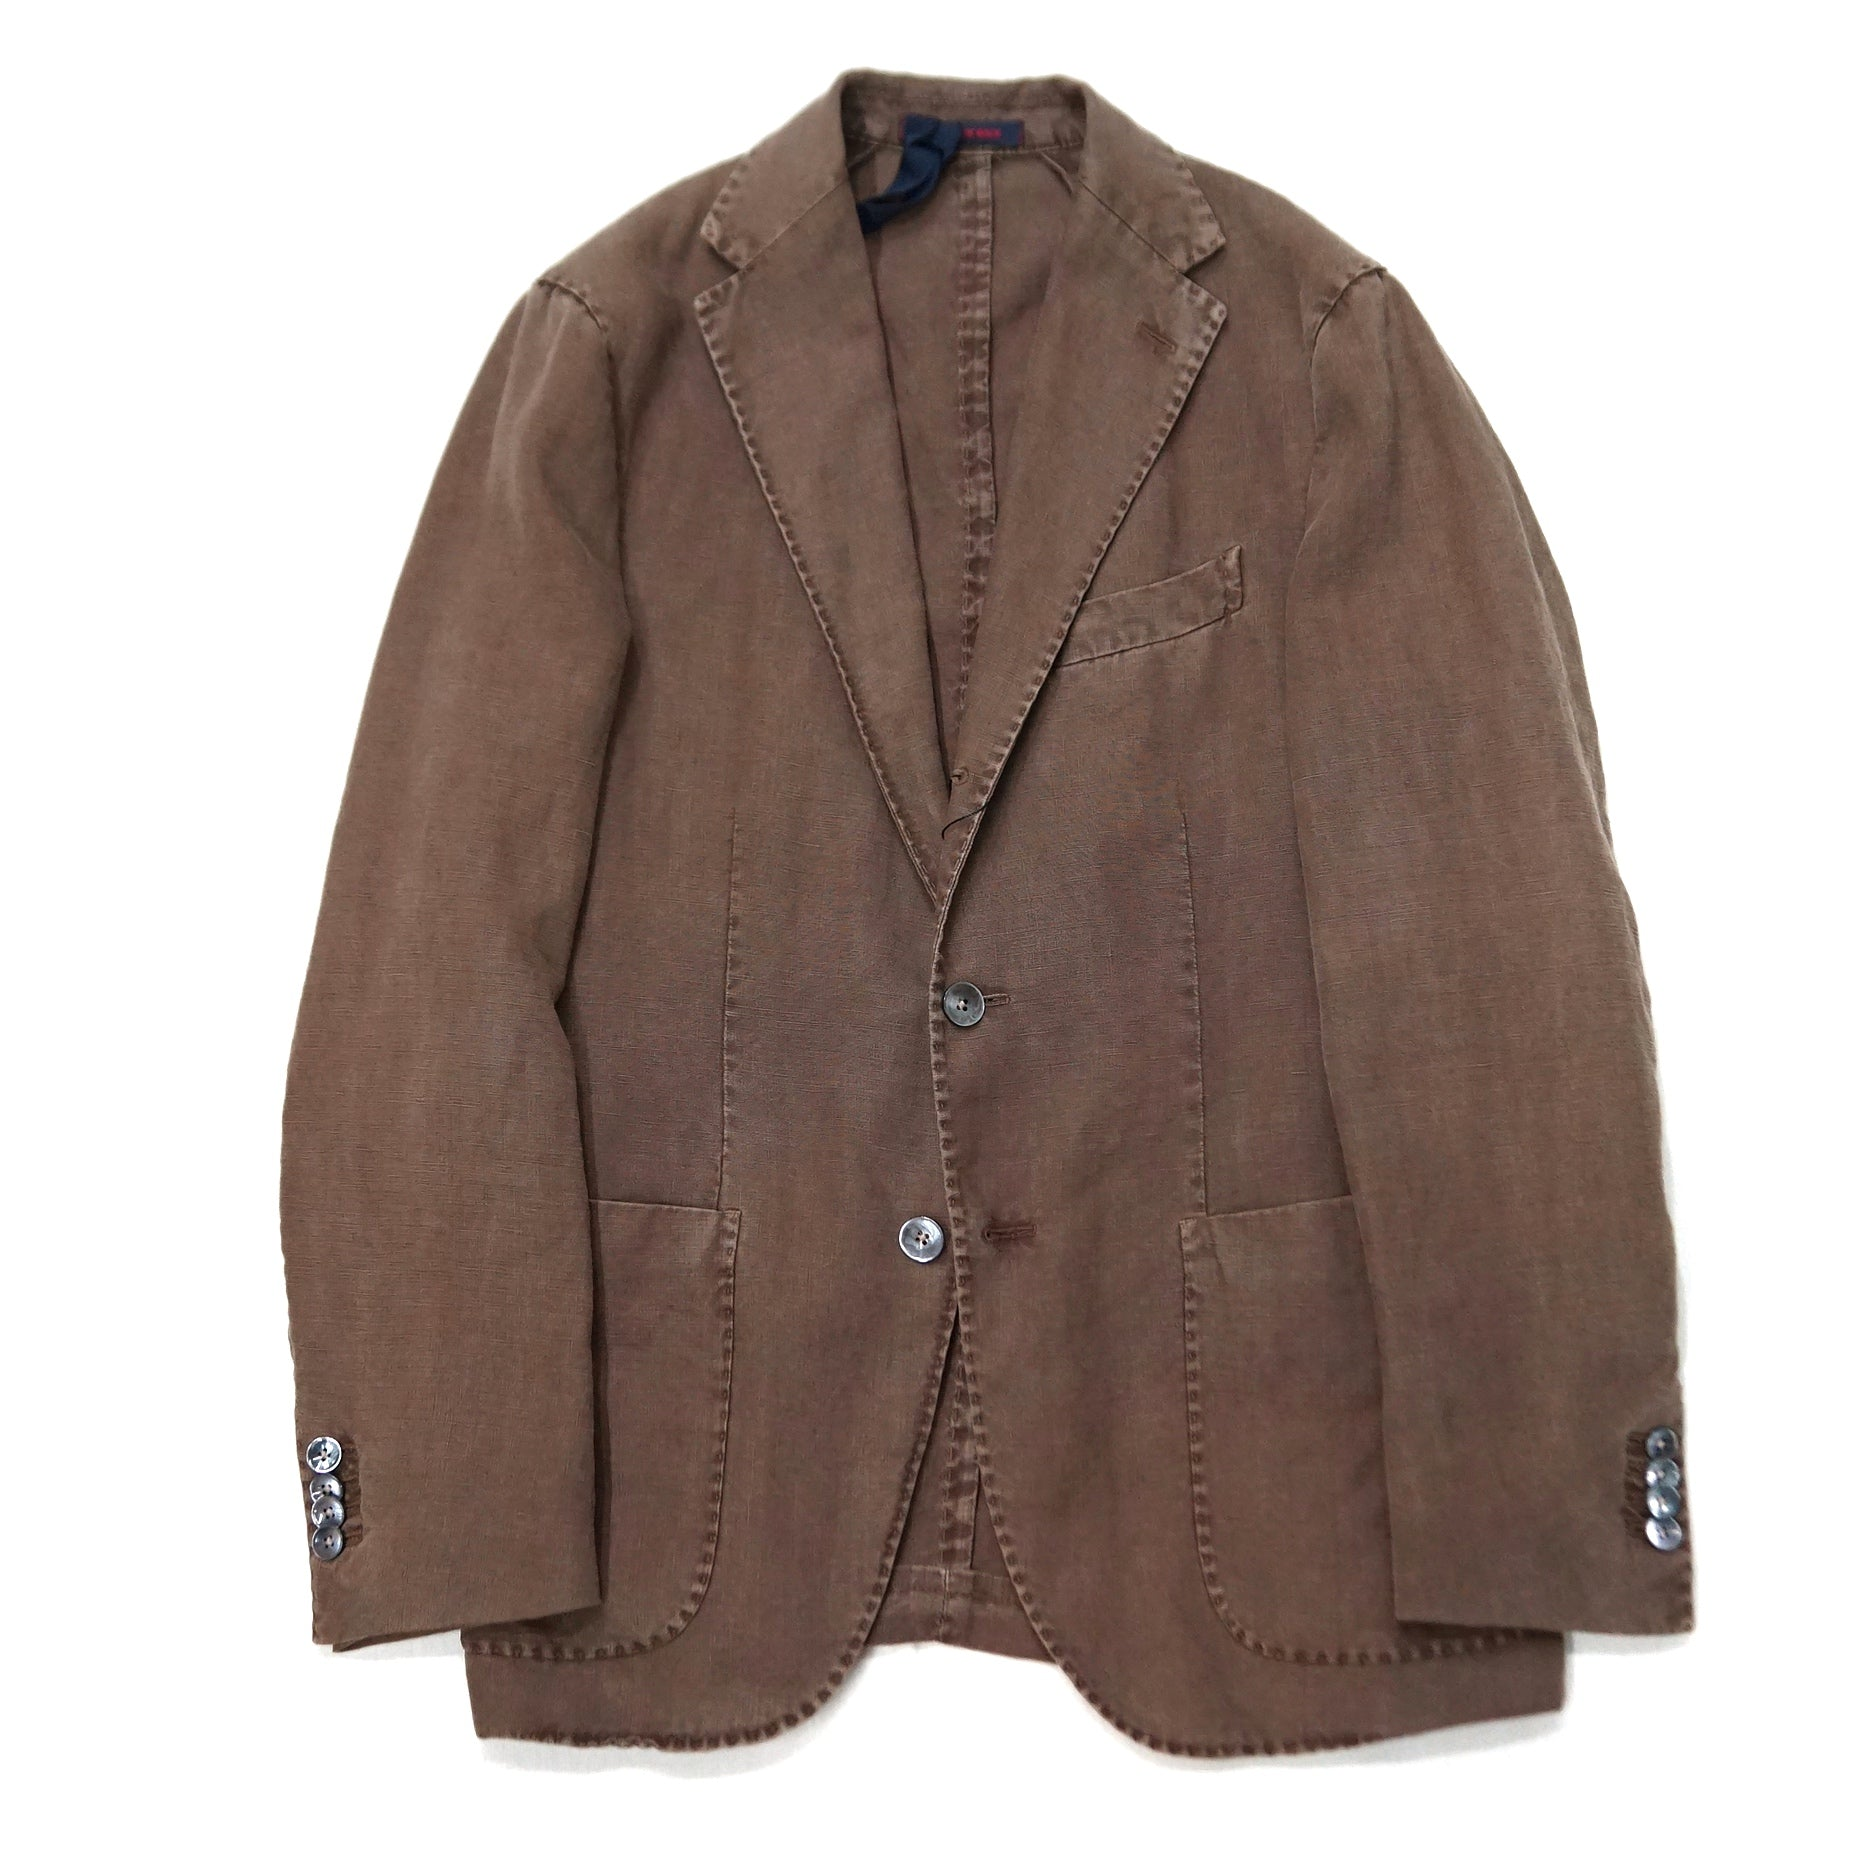 The Gigi Brown Linen Jacket ; ART K603